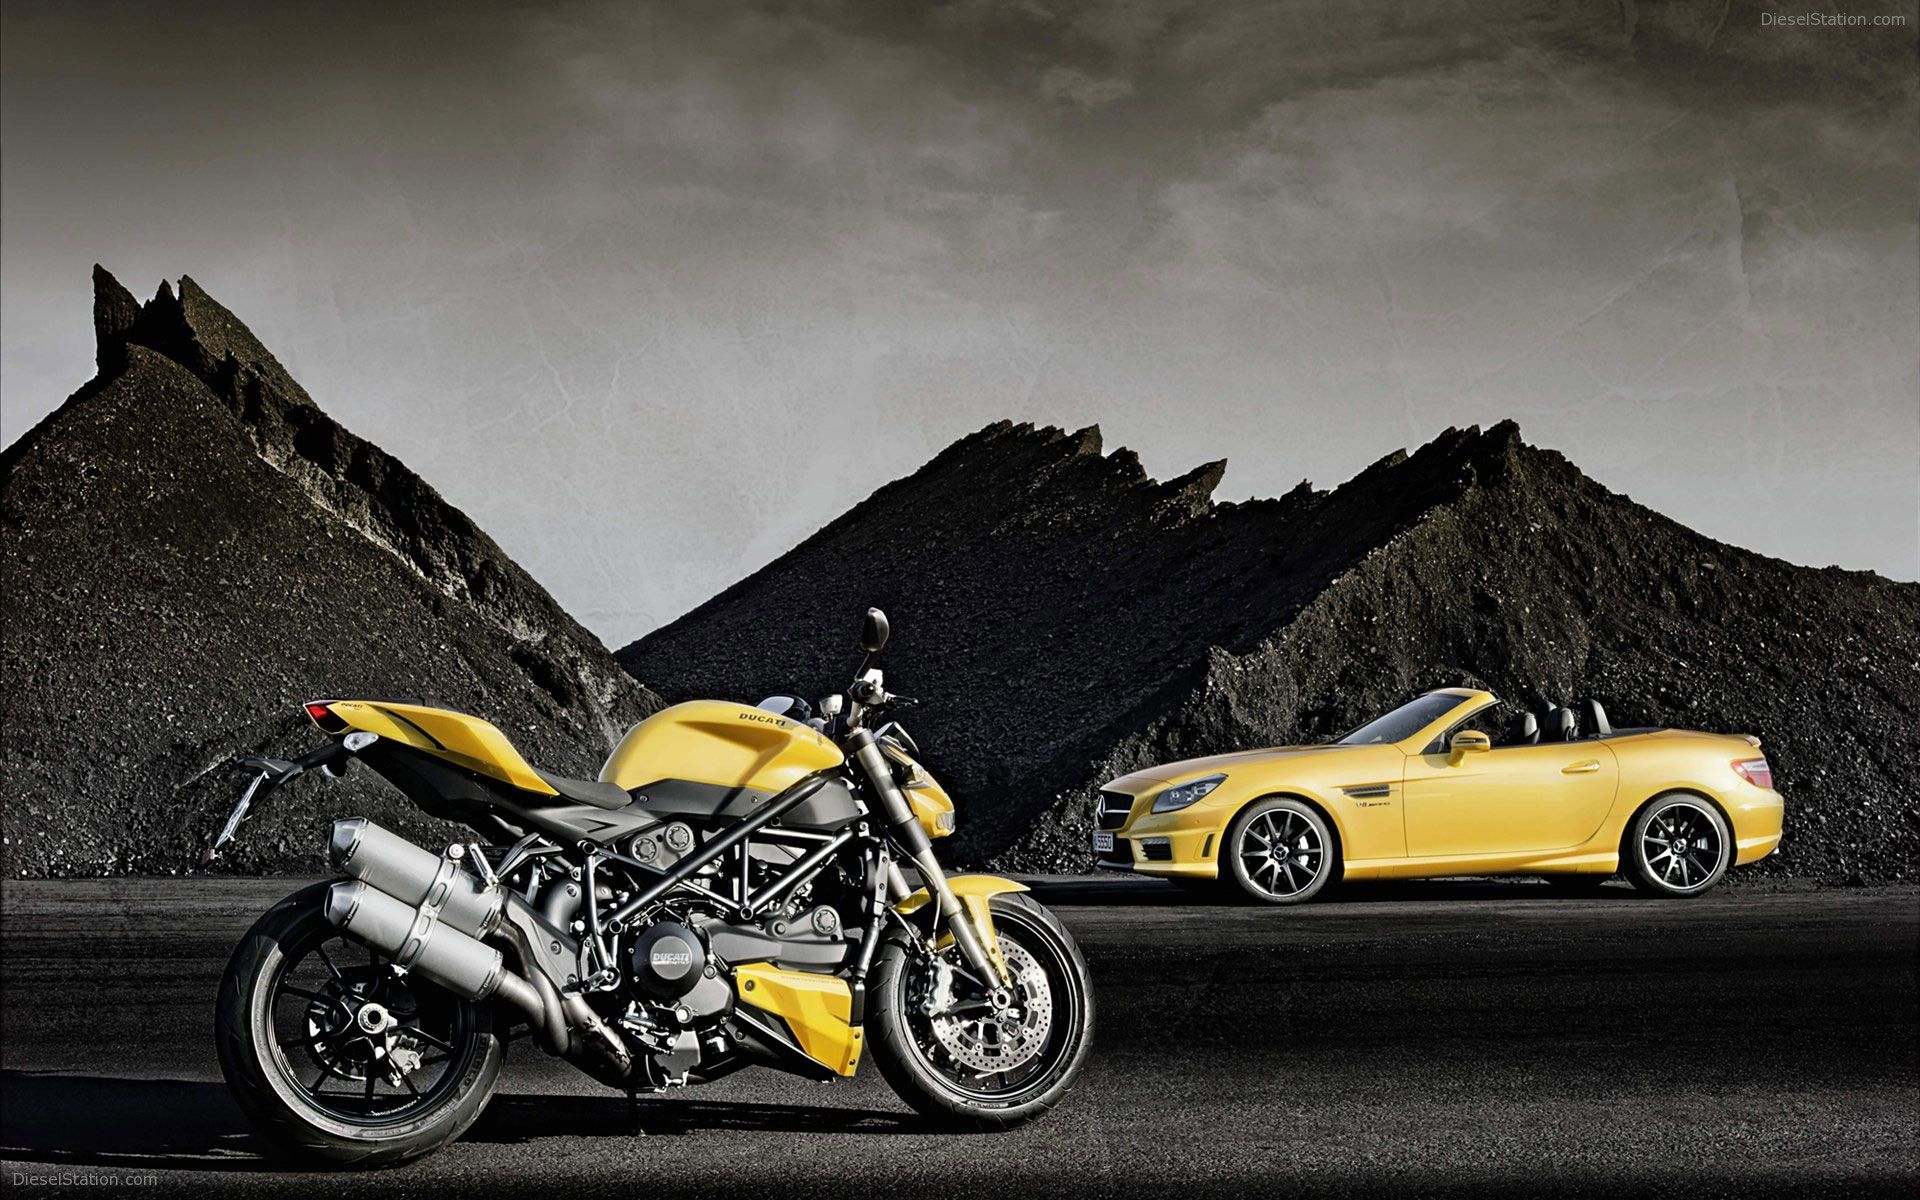 Ducati Street Fighter Mercedes Benz Hd Wallpapers In Hd Hd